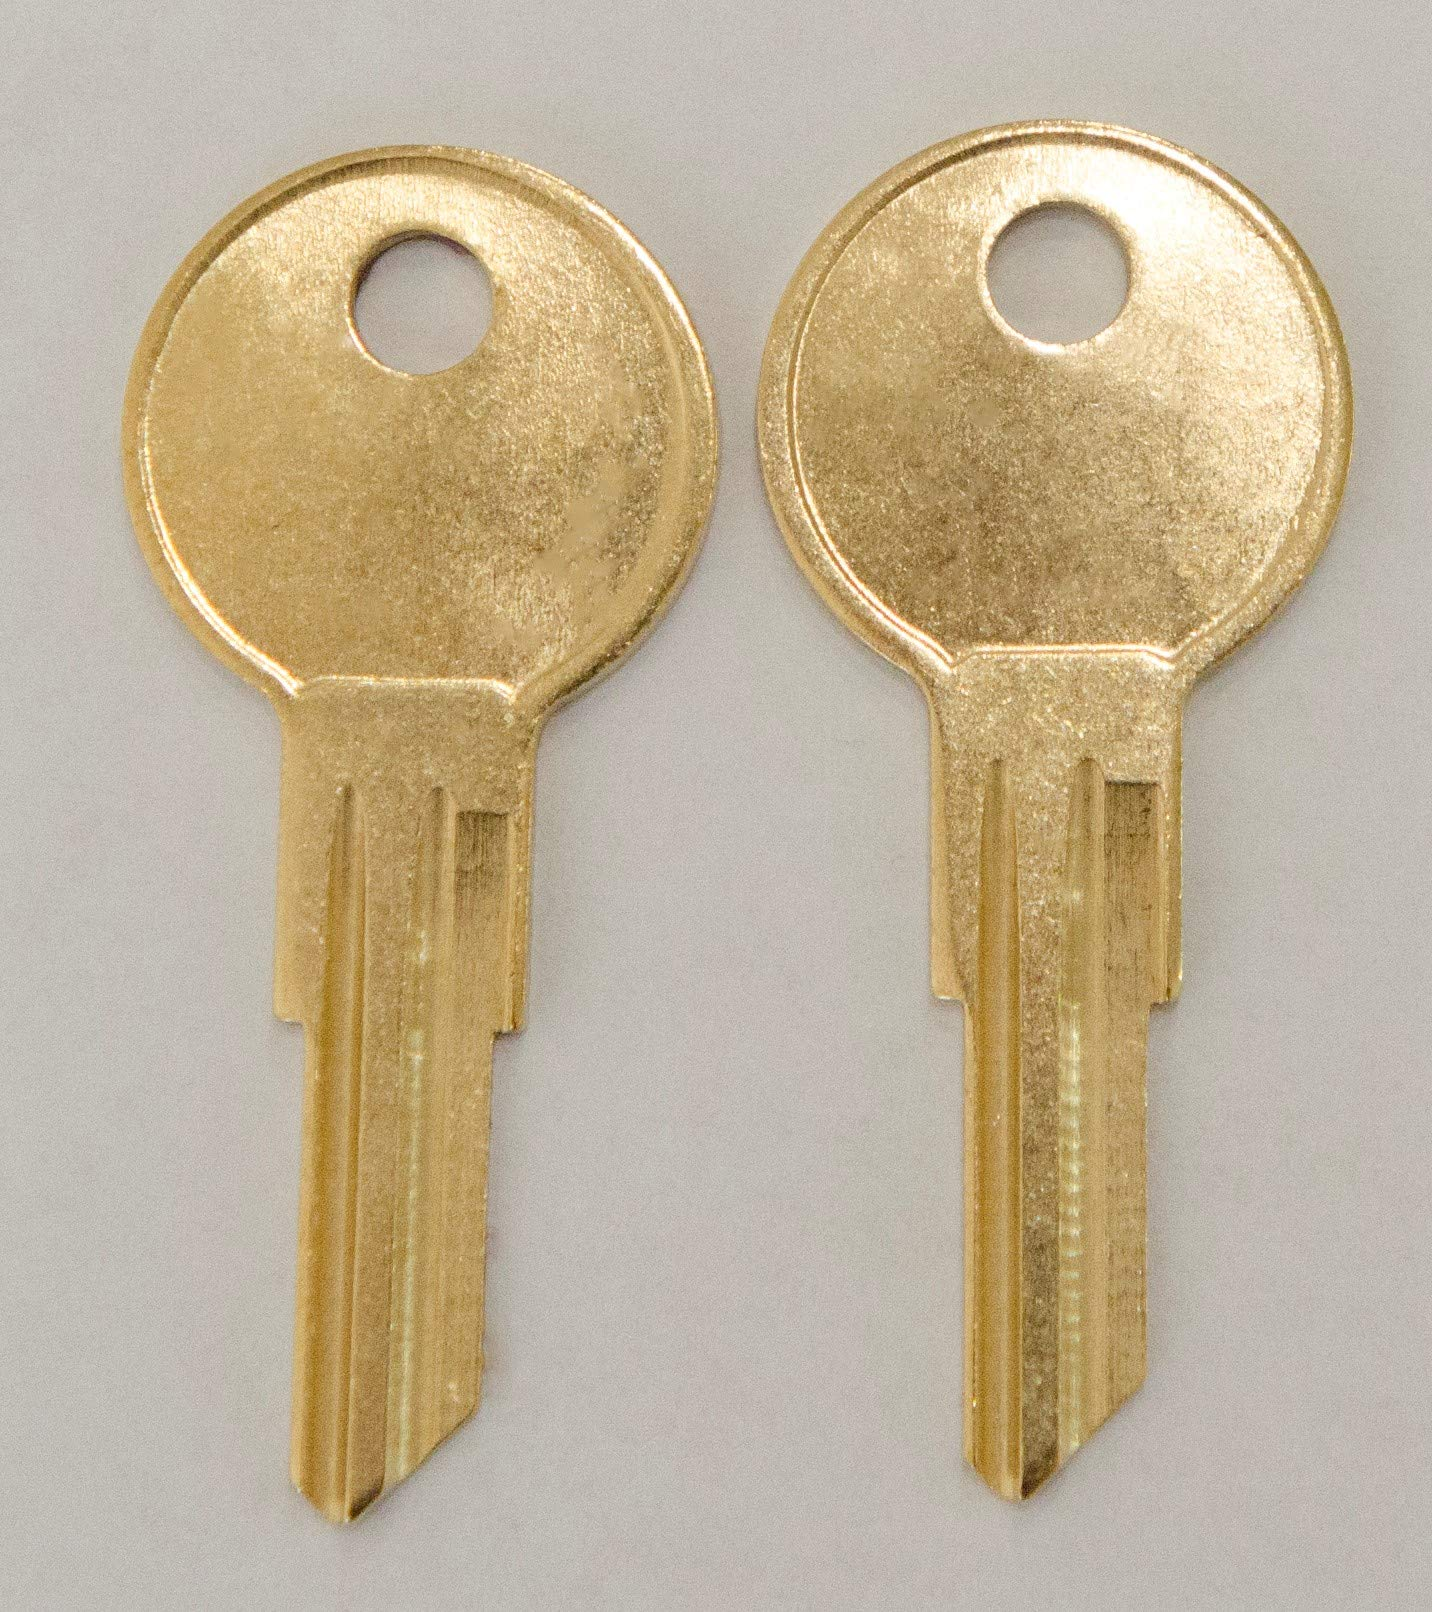 Two Replacement Keys for Herman Miller File Cabinet Office Furniture Cut to Lock/Key Numbers from UM227 to UM350 pre Cut to Code by keys22 (um317) by Keys22